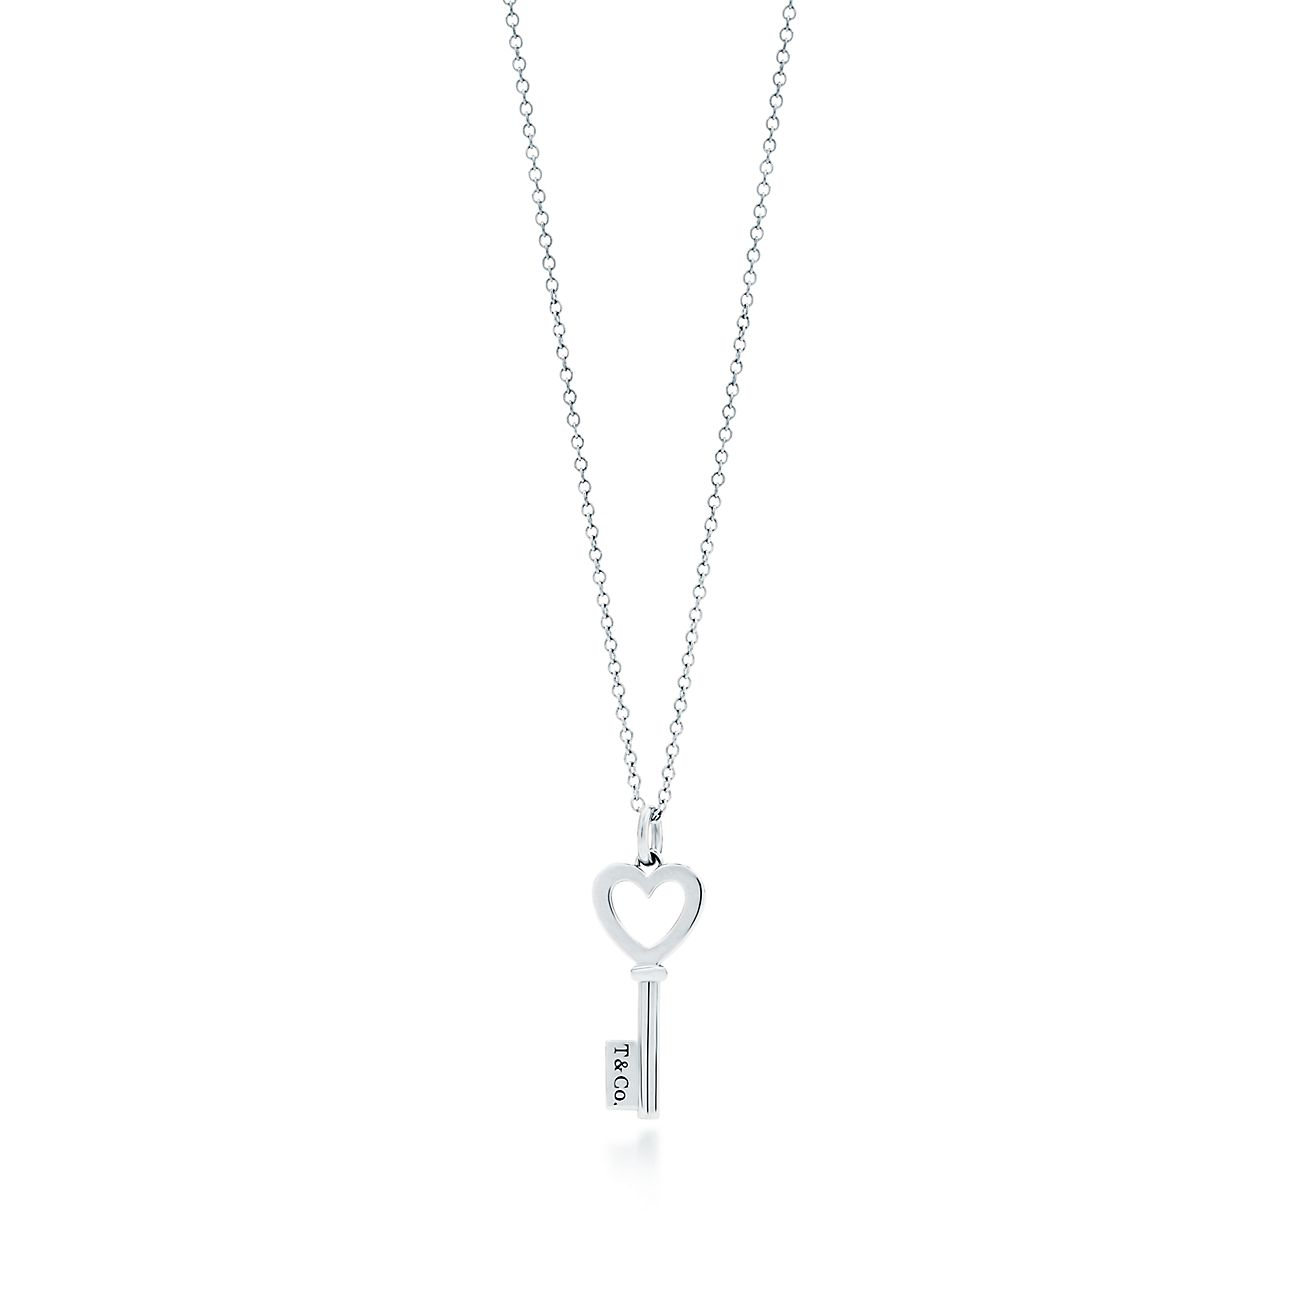 sale id tiffany j platinum and key for pendant necklaces jewelry necklace at diamond master co